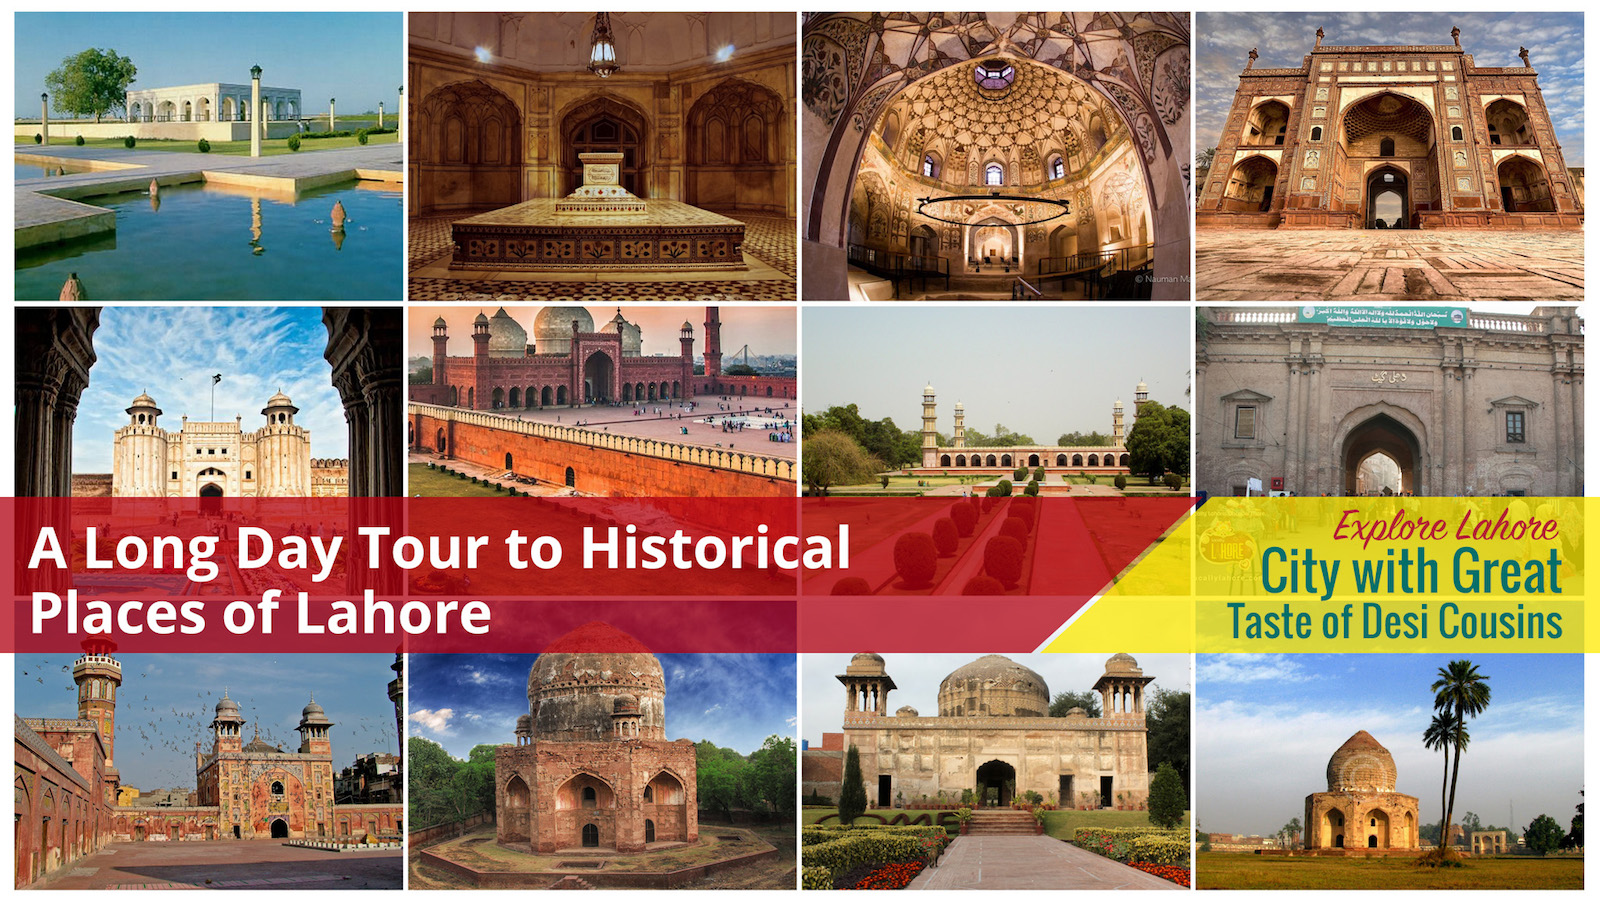 A Long Day Tour to Historical Places of Lahore